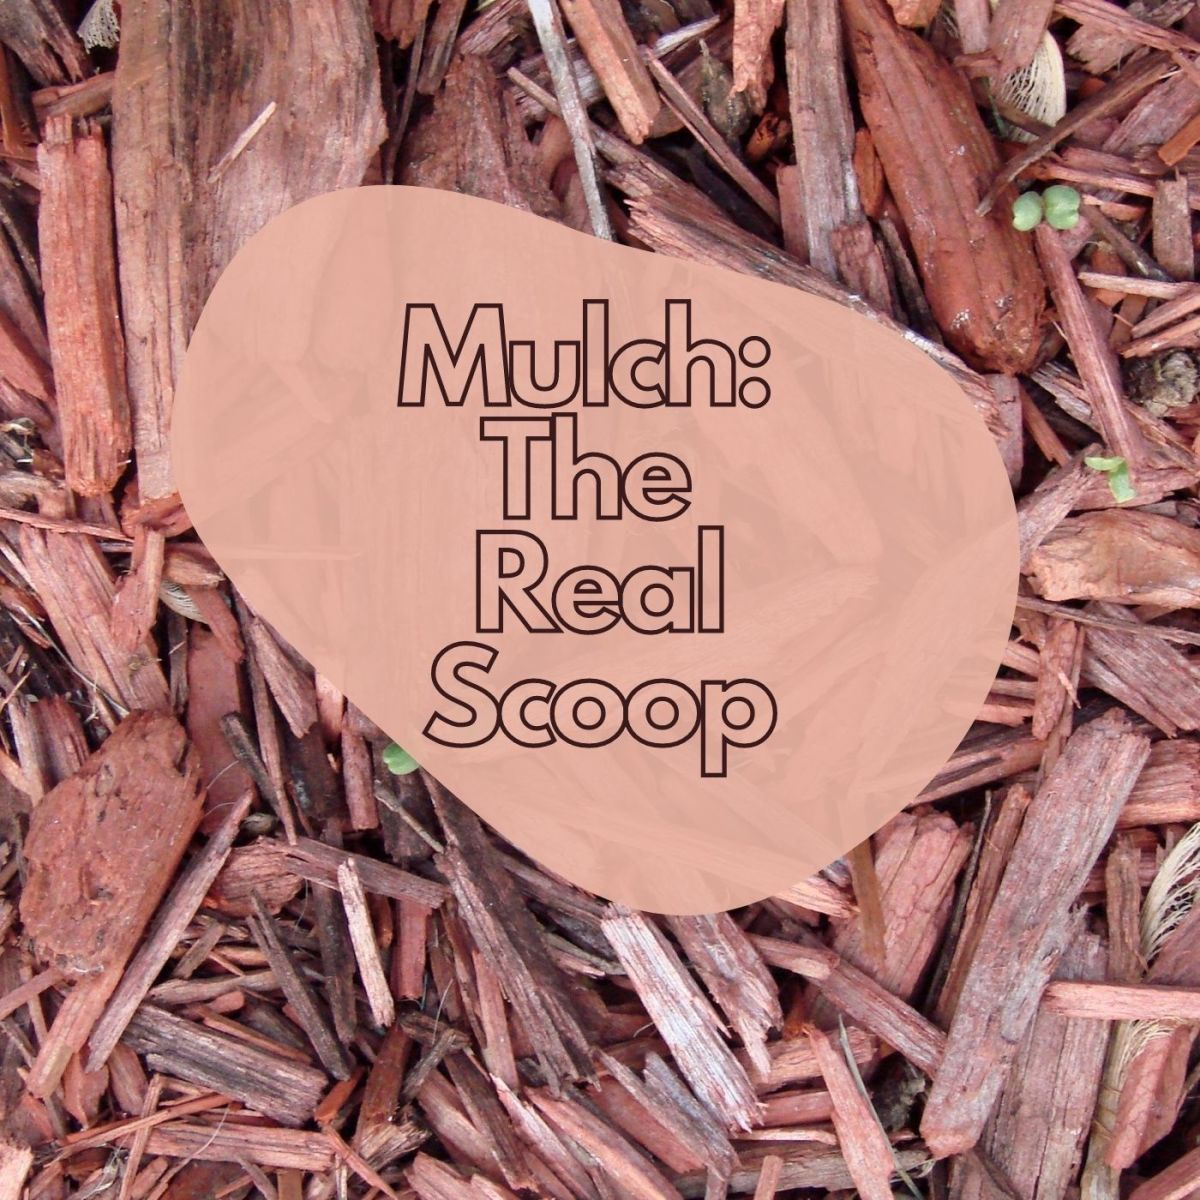 There is so much to learn about mulch!